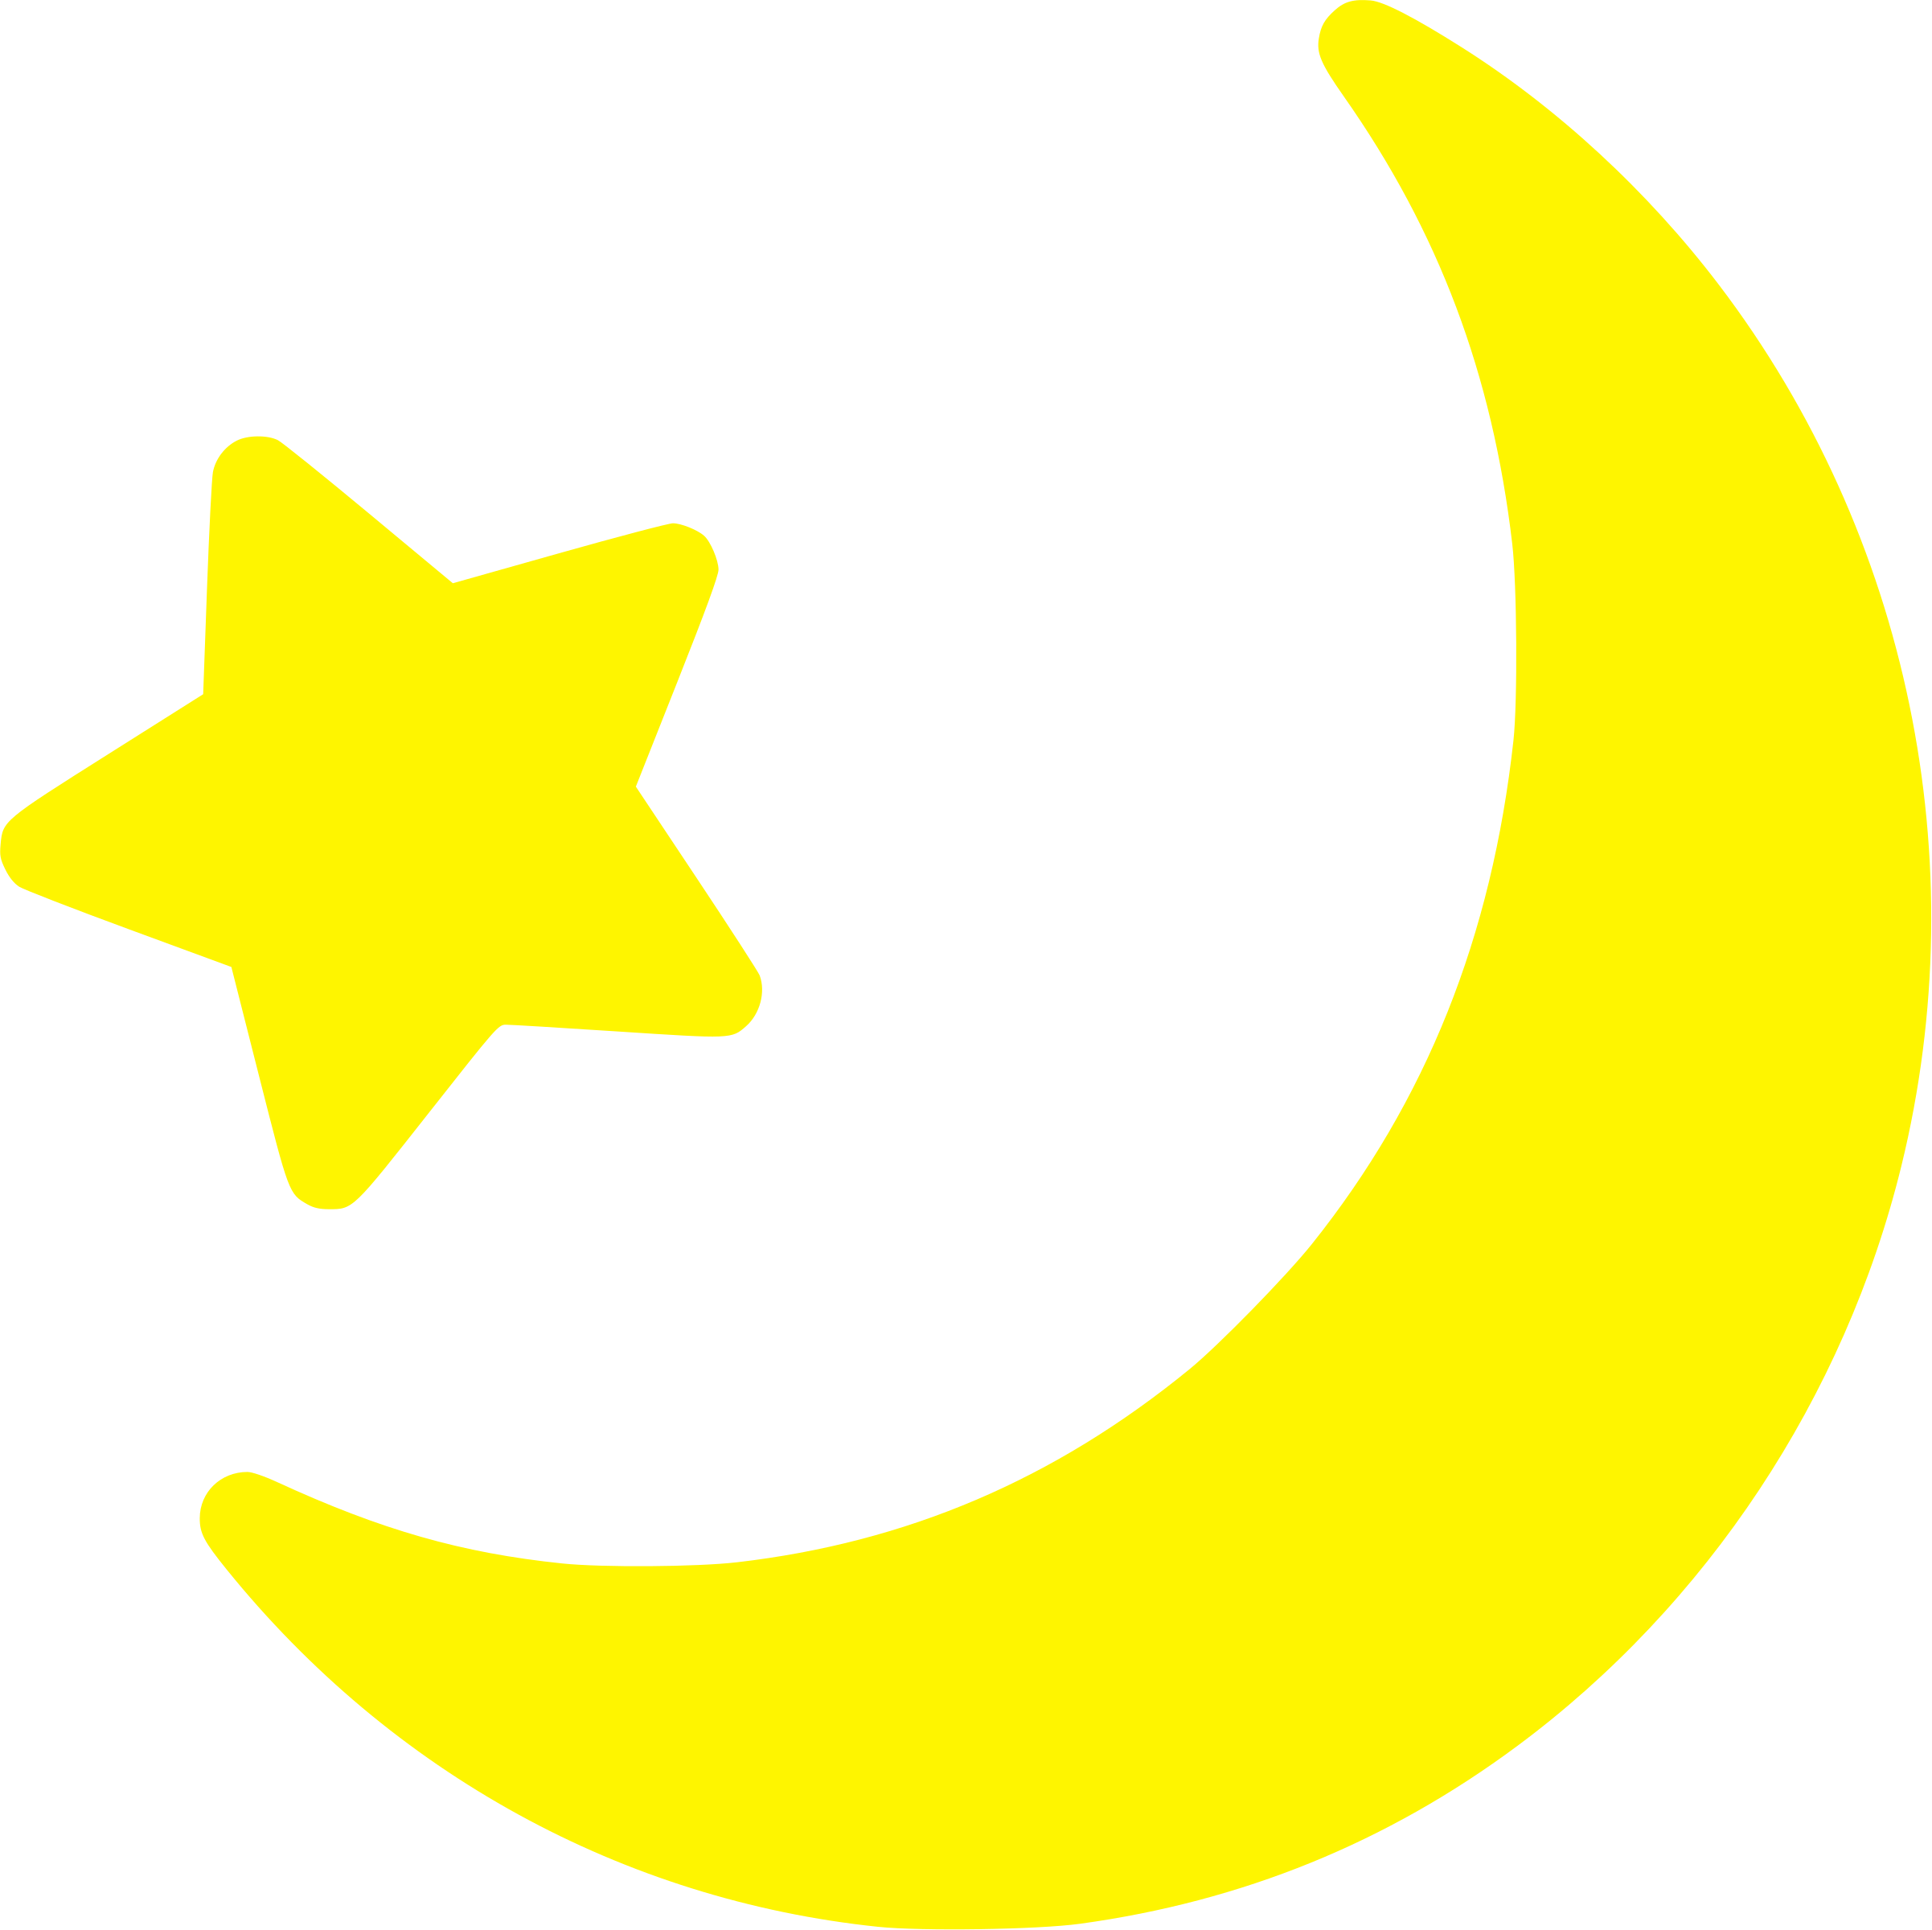 Hand Drawn Yellow Star Vector Free Image By Rawpixel Com Adj Vector Vectorart Vector Free How To Draw Hands Free Hand Drawing